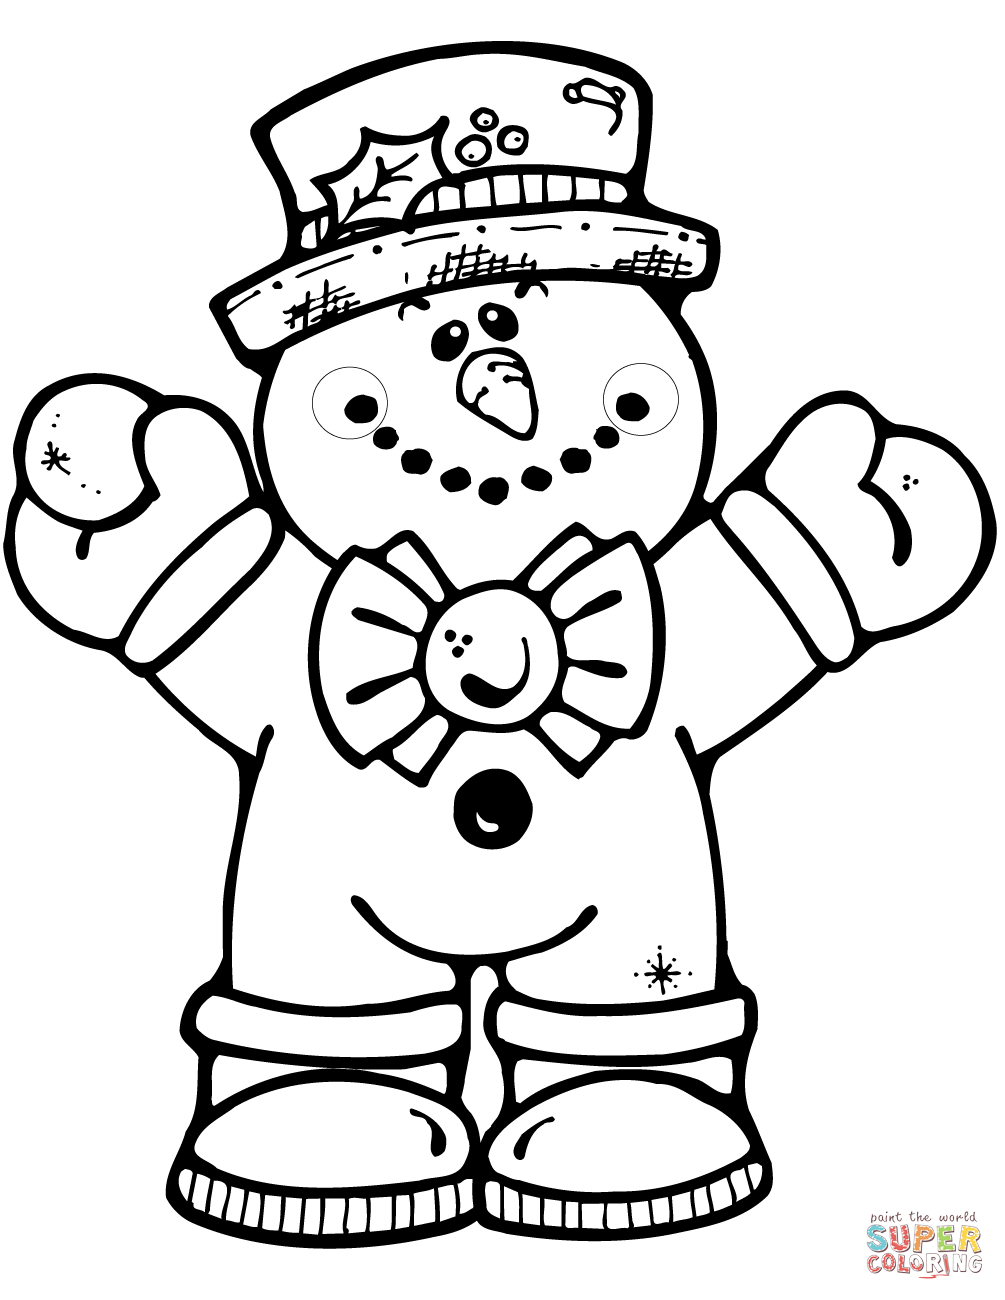 Hugging Snowman Coloring Page Free Printable Pages